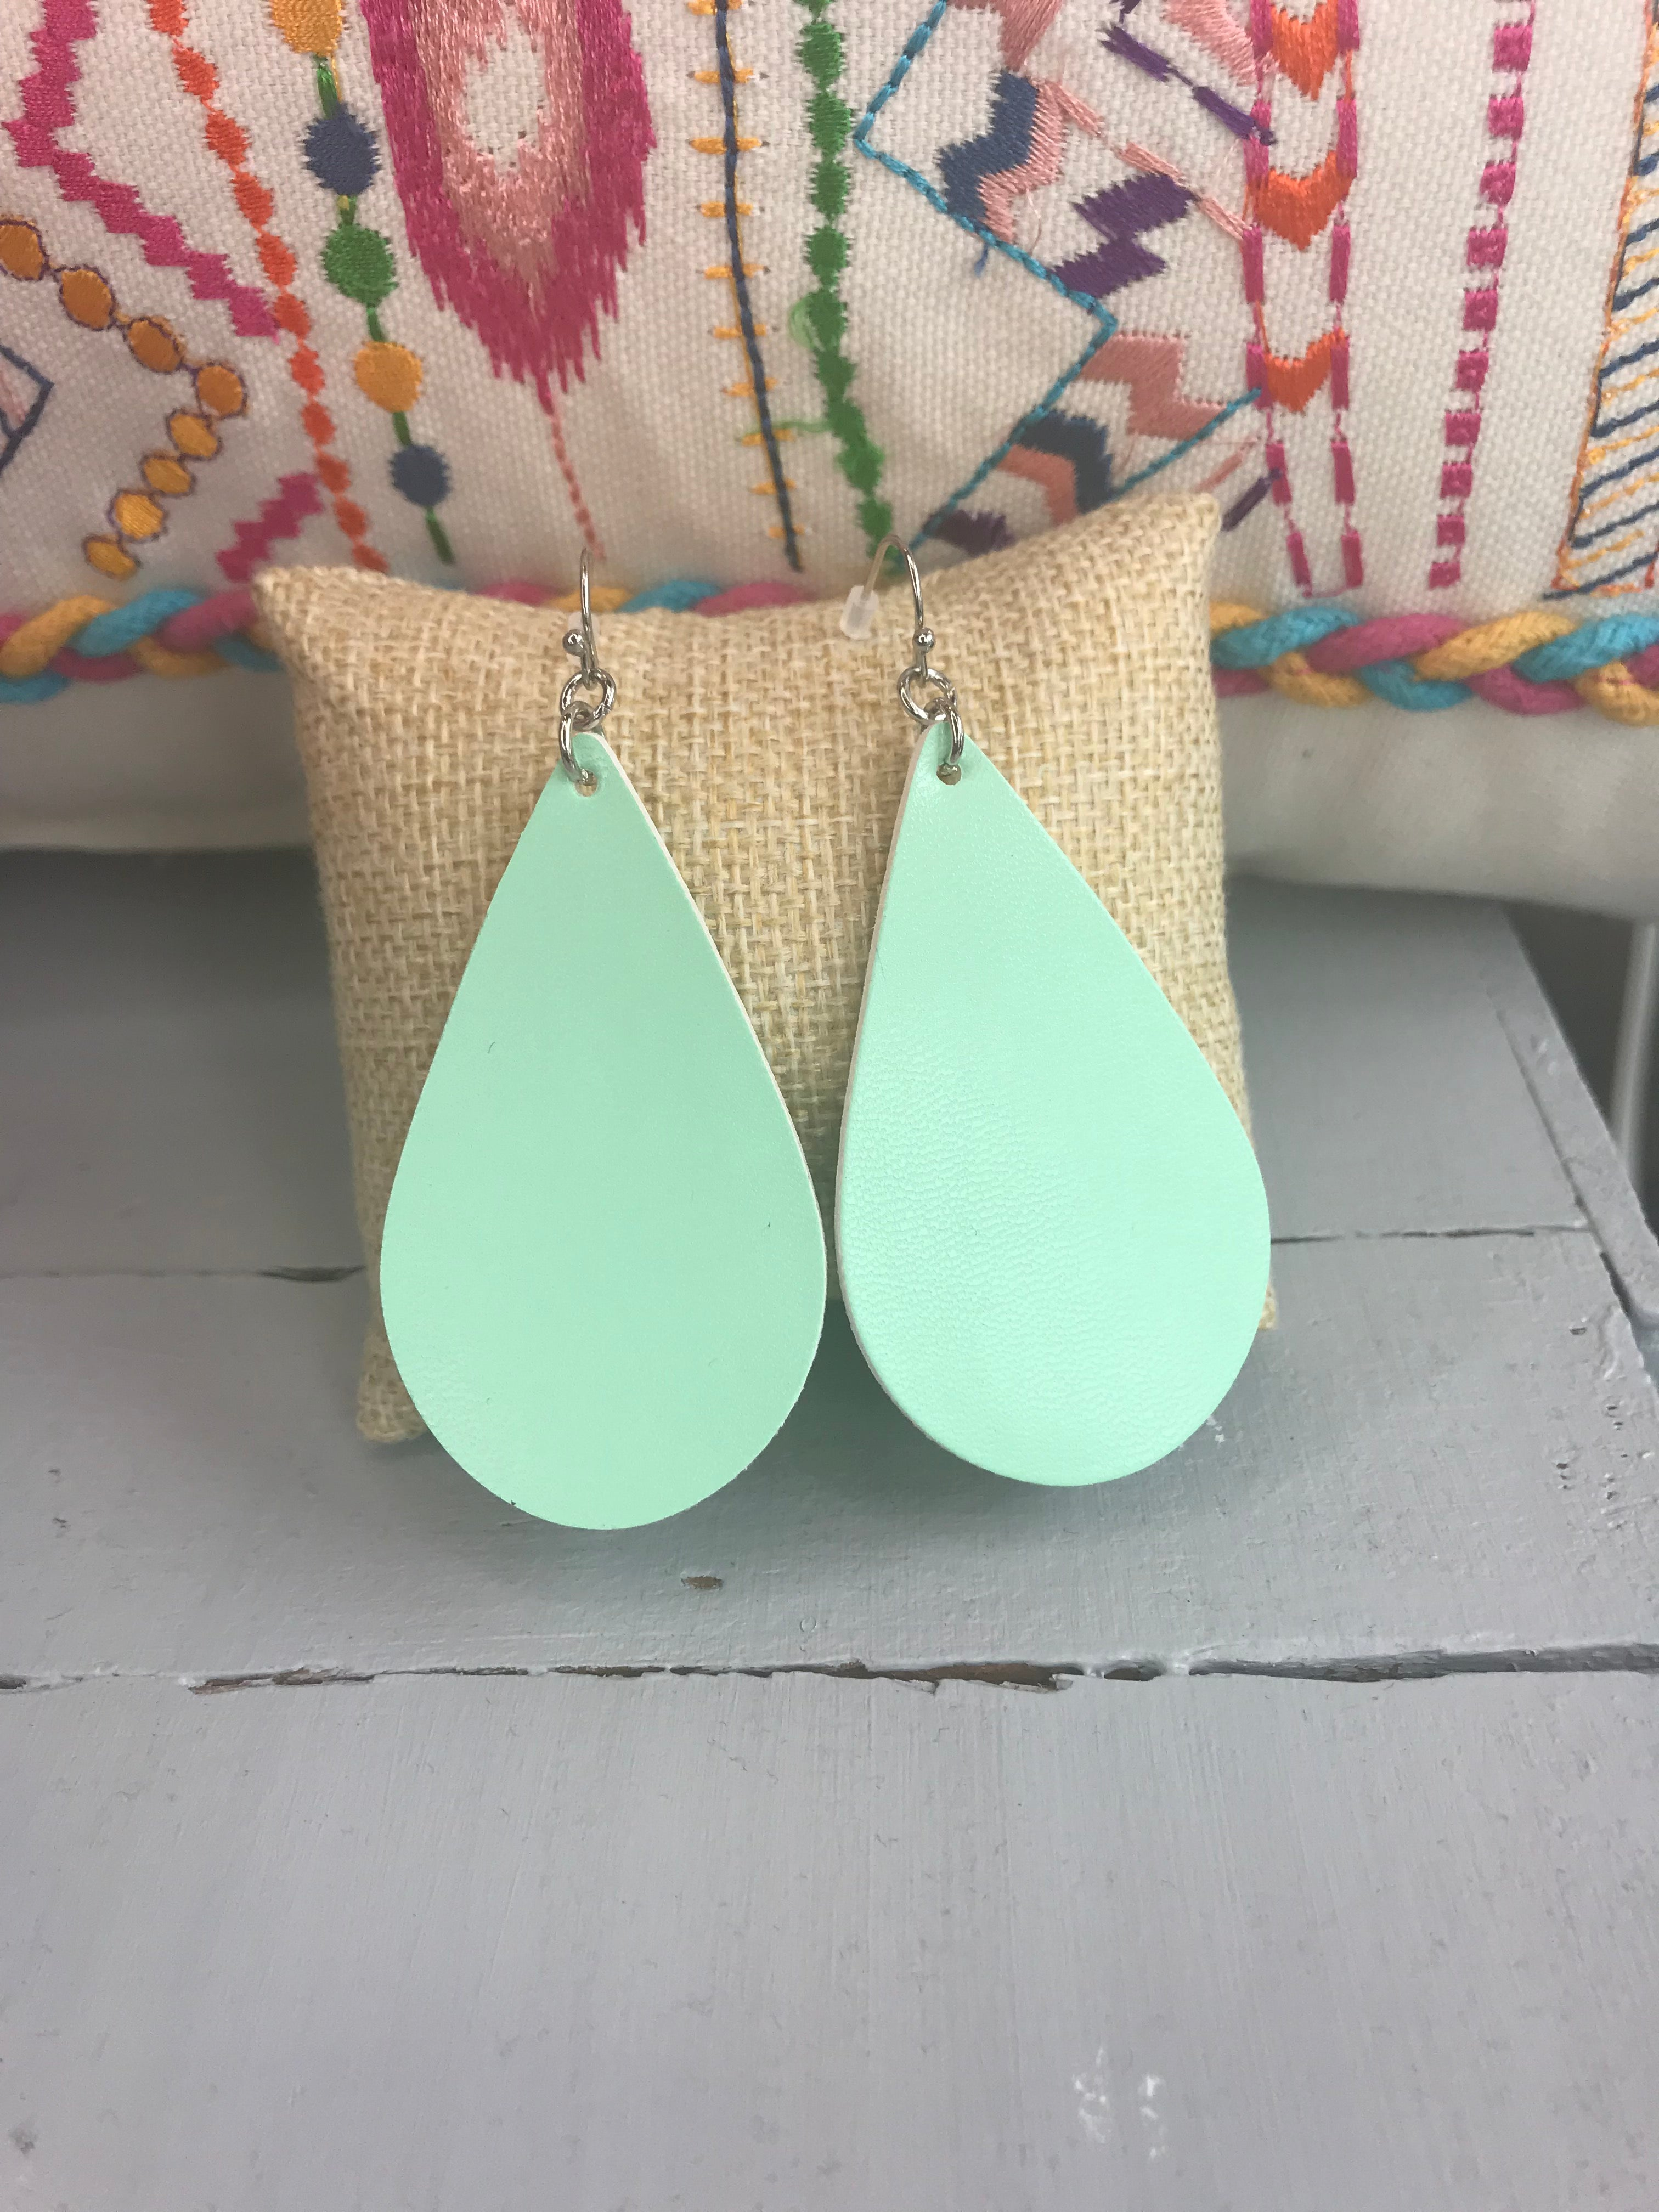 Come Around Tear Drop Faux Leather Earrings- Mint